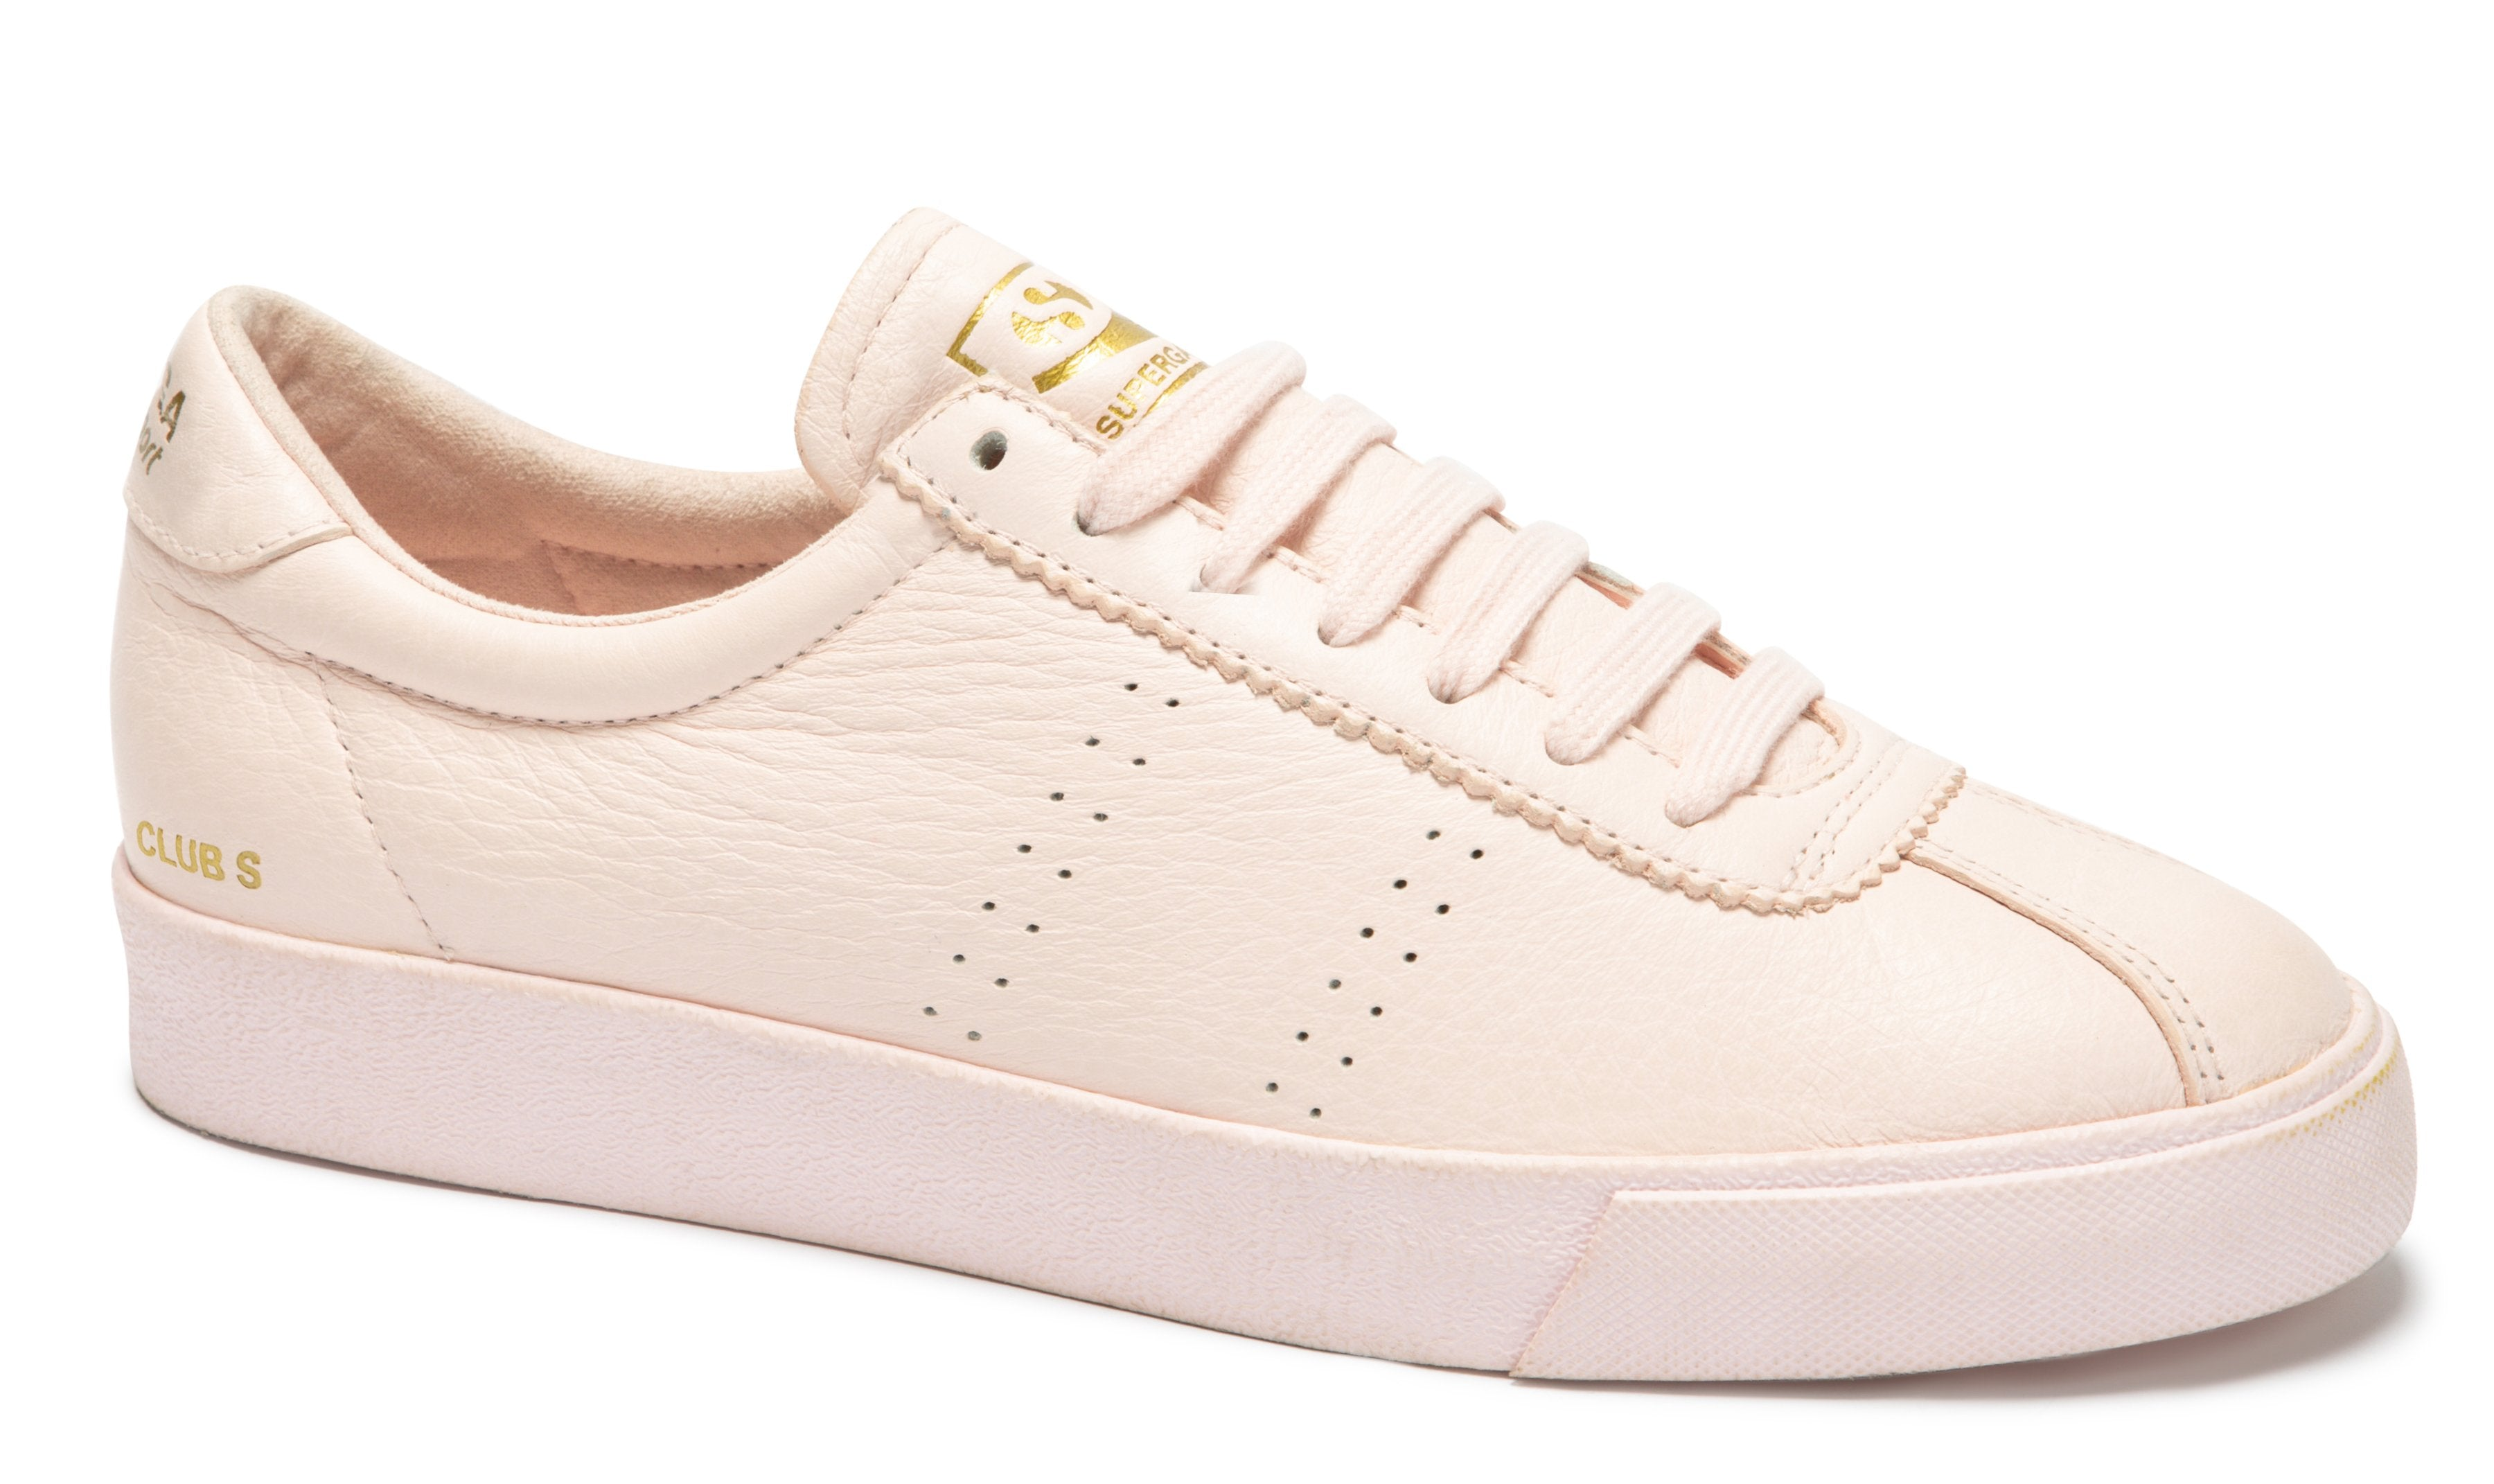 2843-CLUBS TUMBLED LEATHER PINK